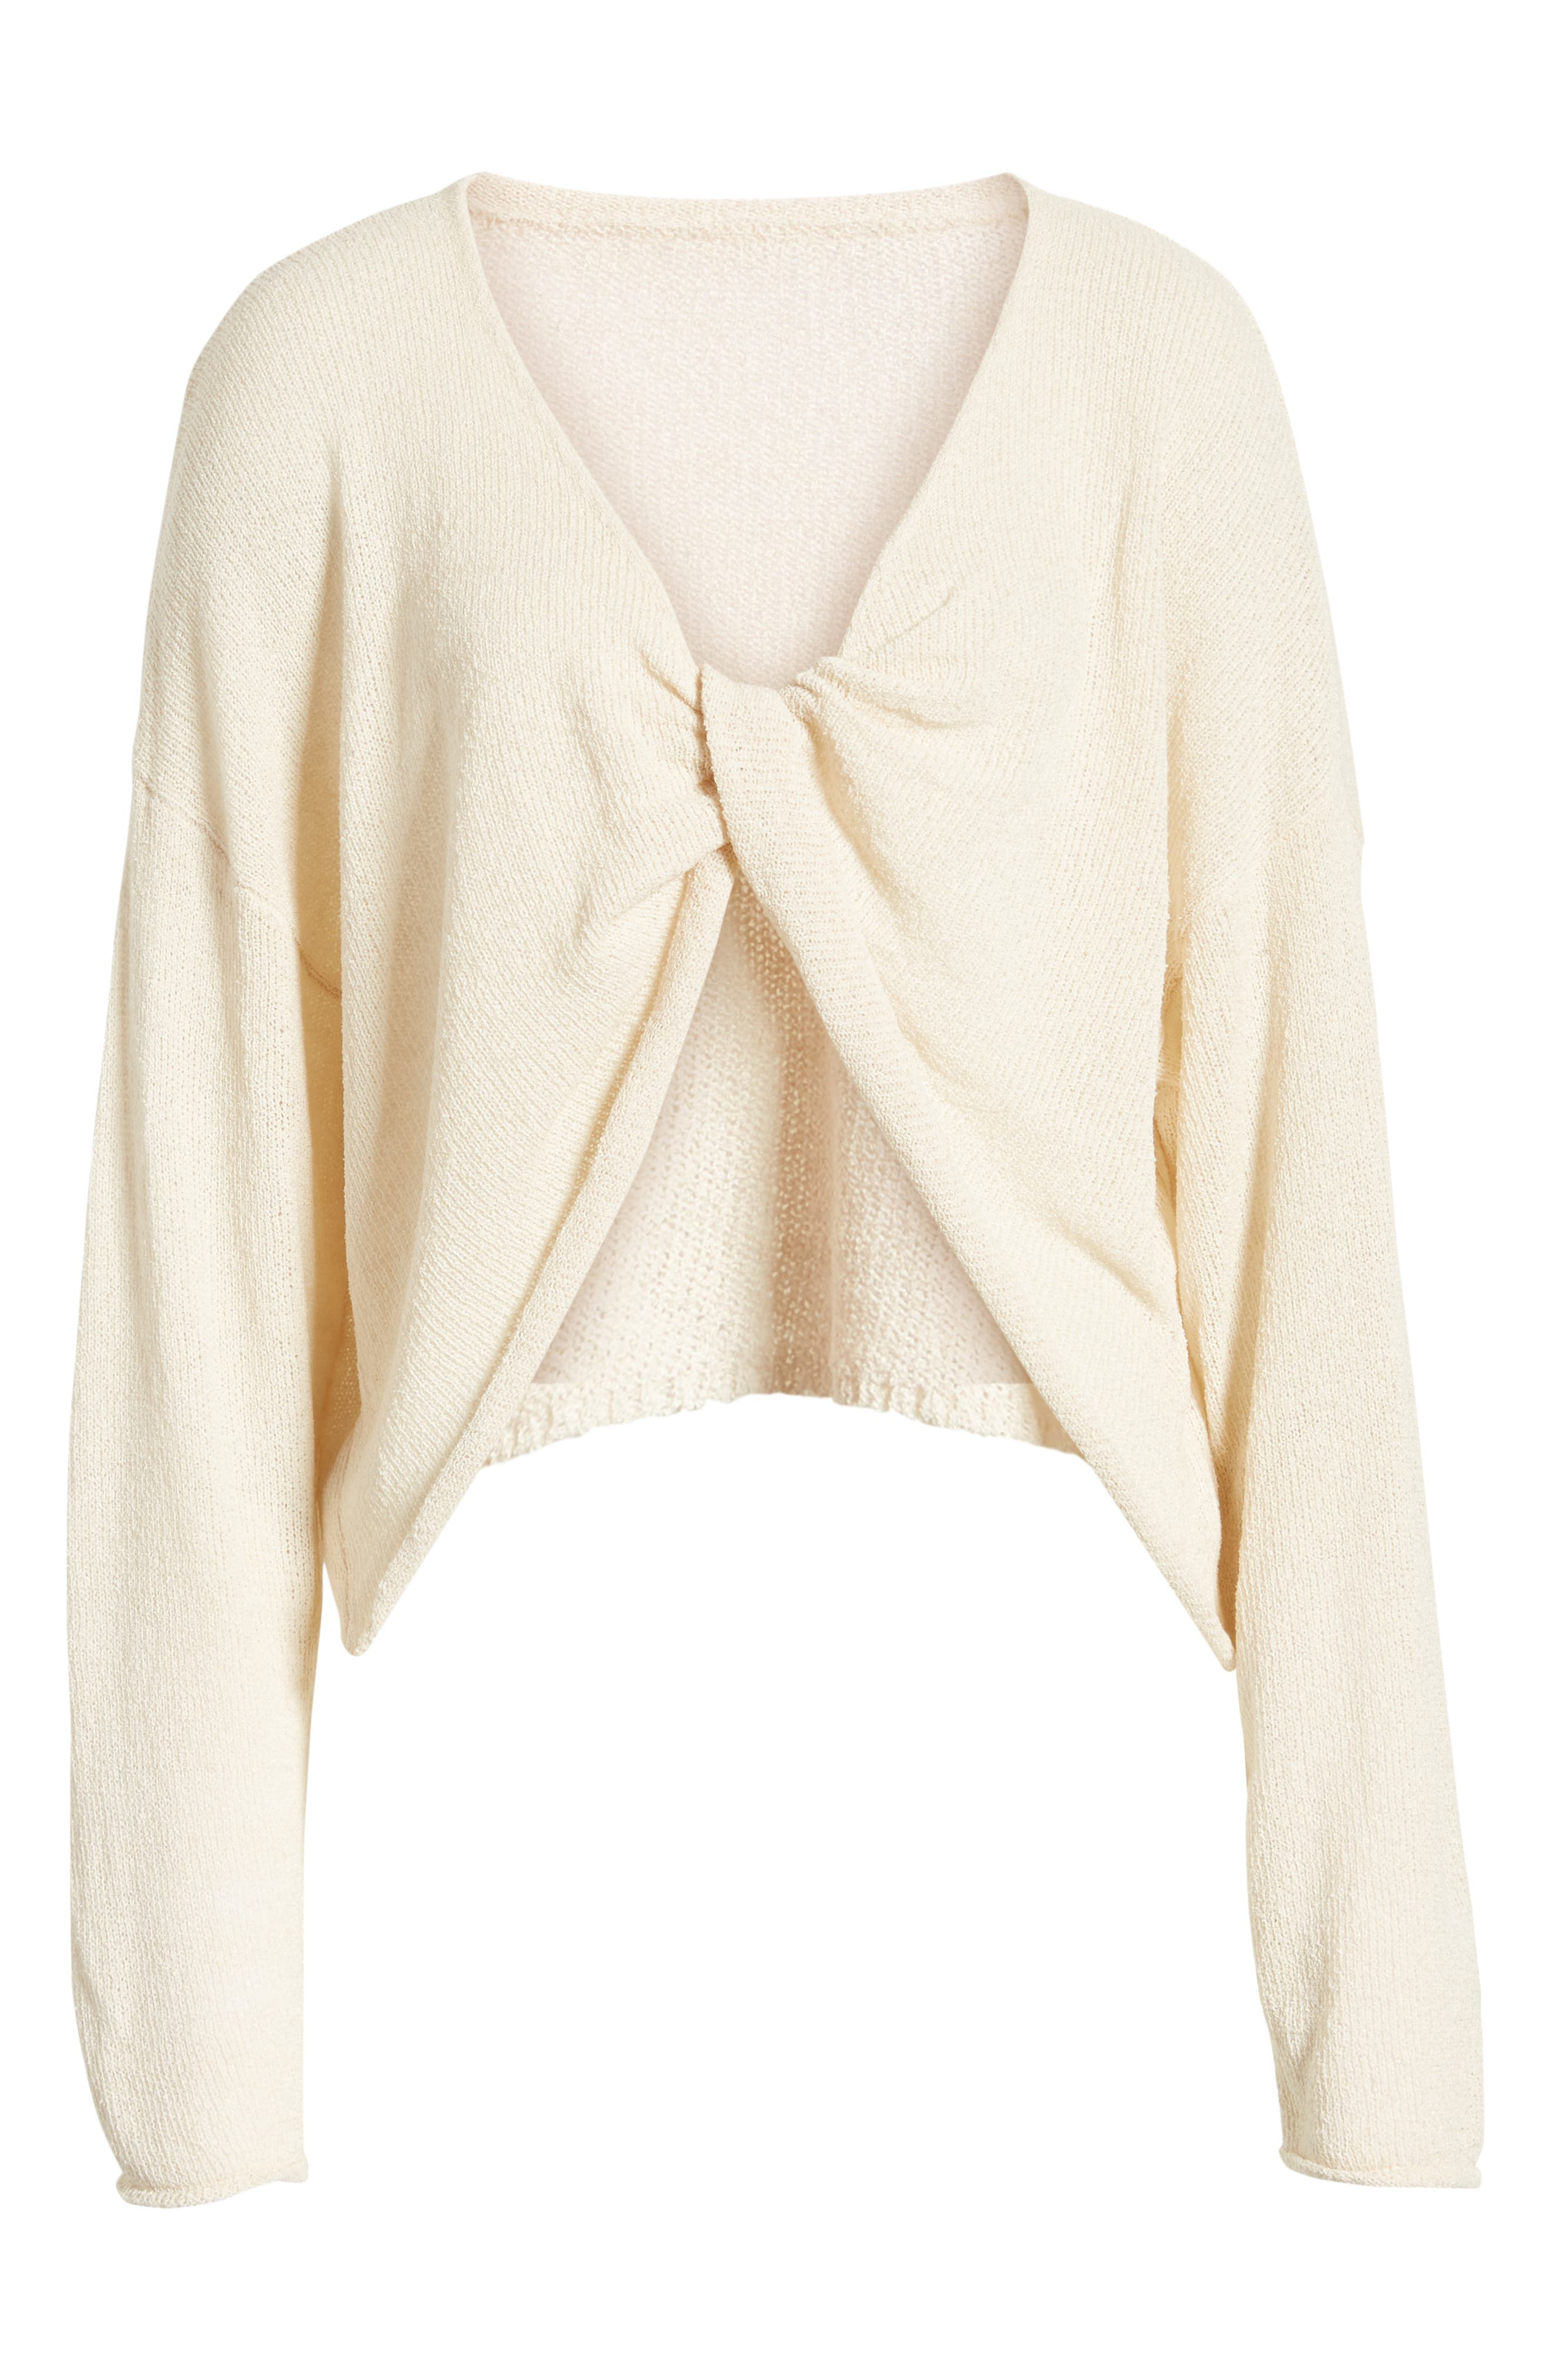 CHRISELLE LIM COLLECTION, Chriselle Lim Sabine Front/Back Sweater, Alternate thumbnail 7, color, NATURAL